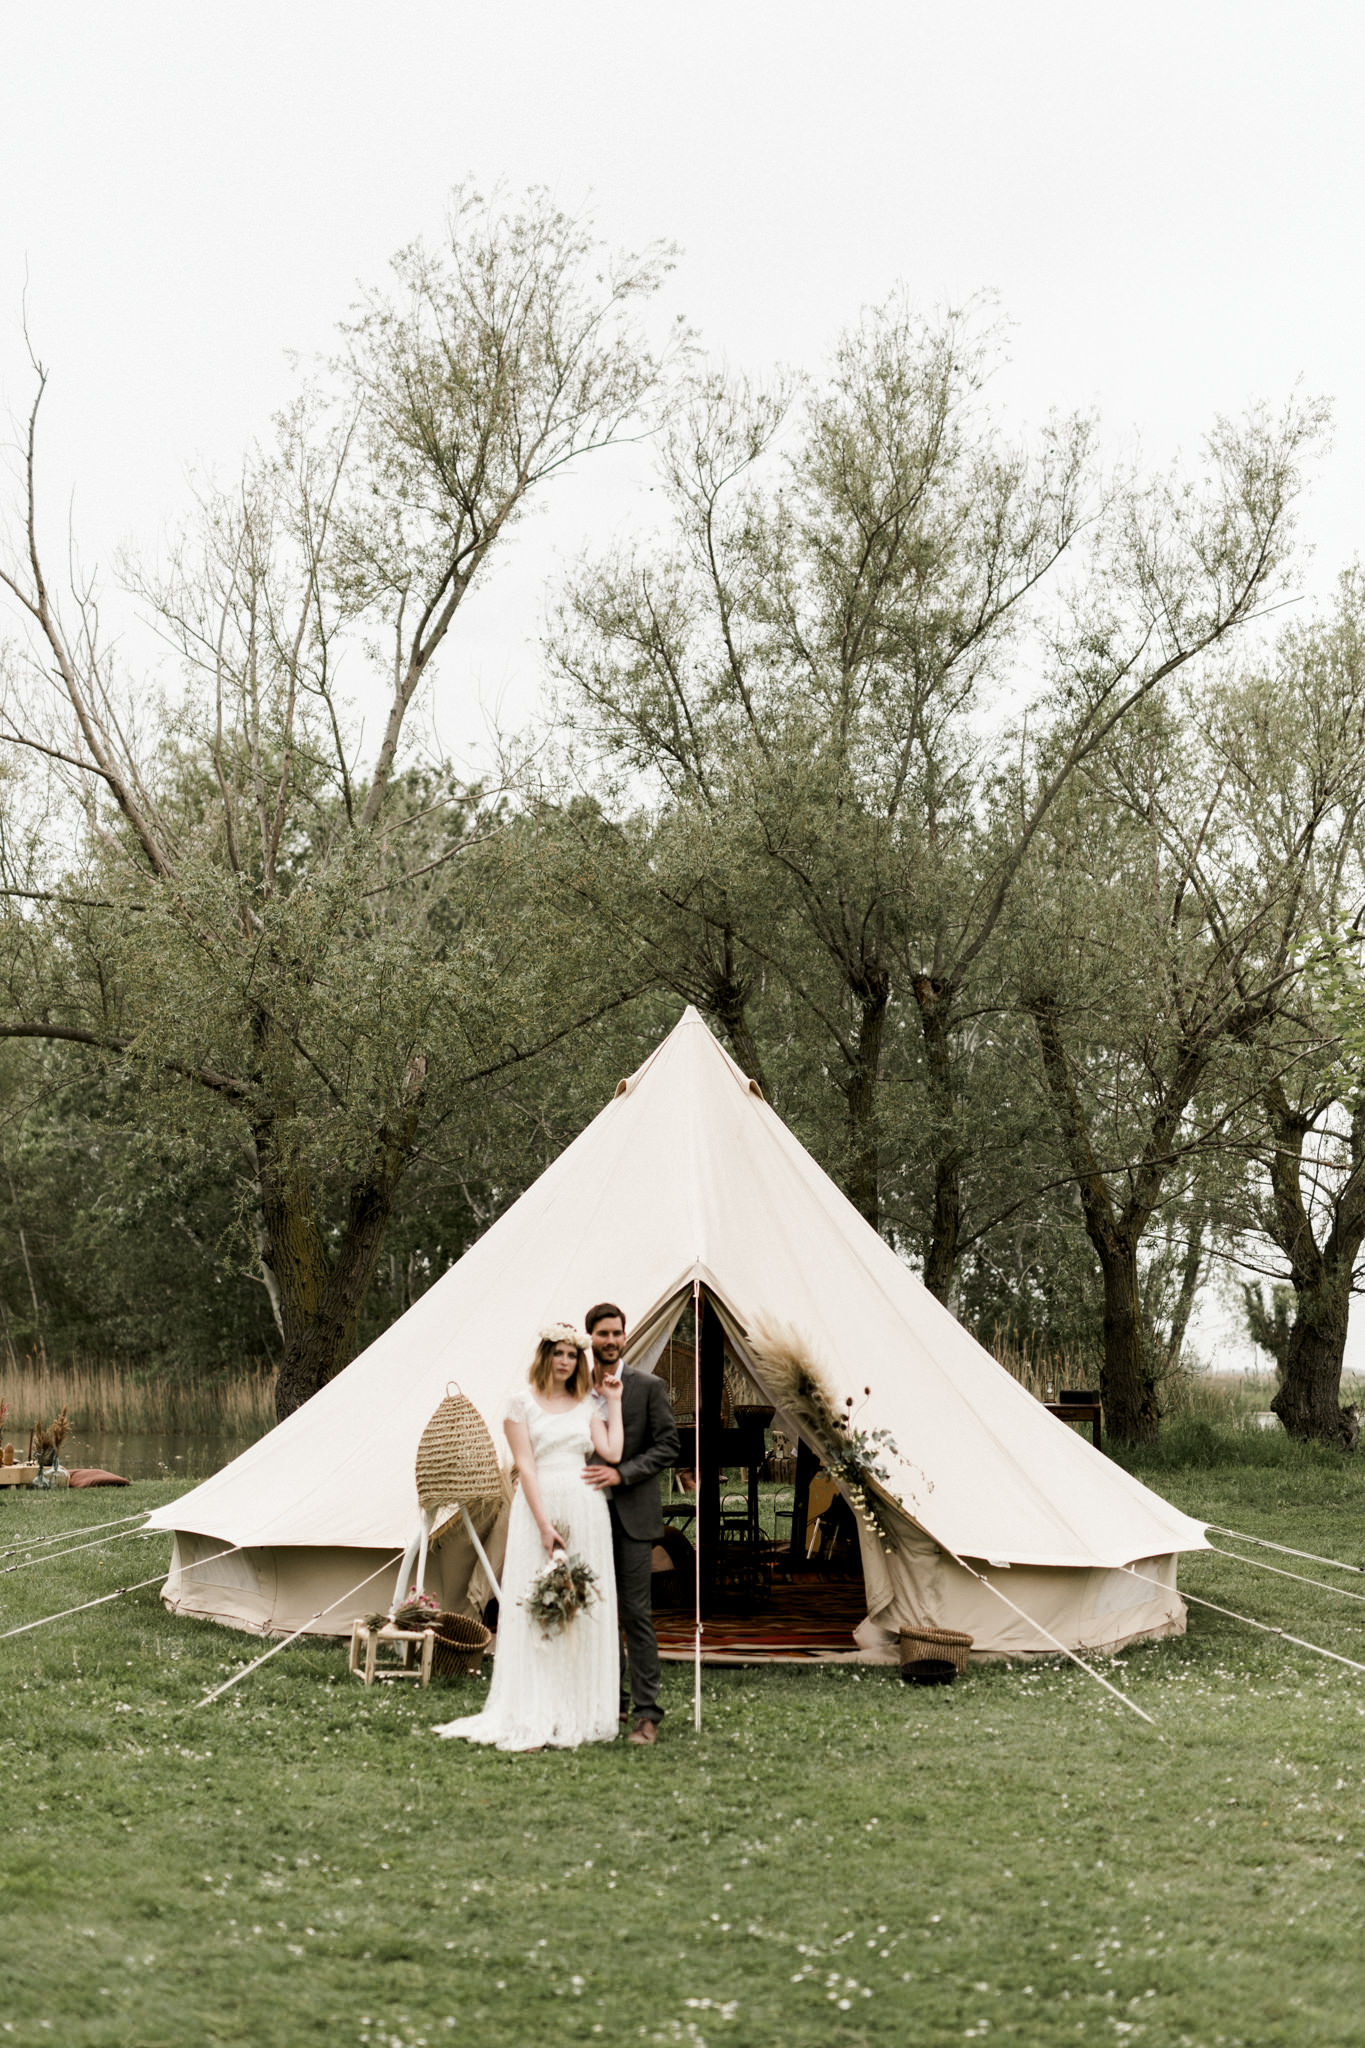 laurent brouzet , belltent wedding , wedding tipi , glamping , event tent , bivouac luxe , boho wedding